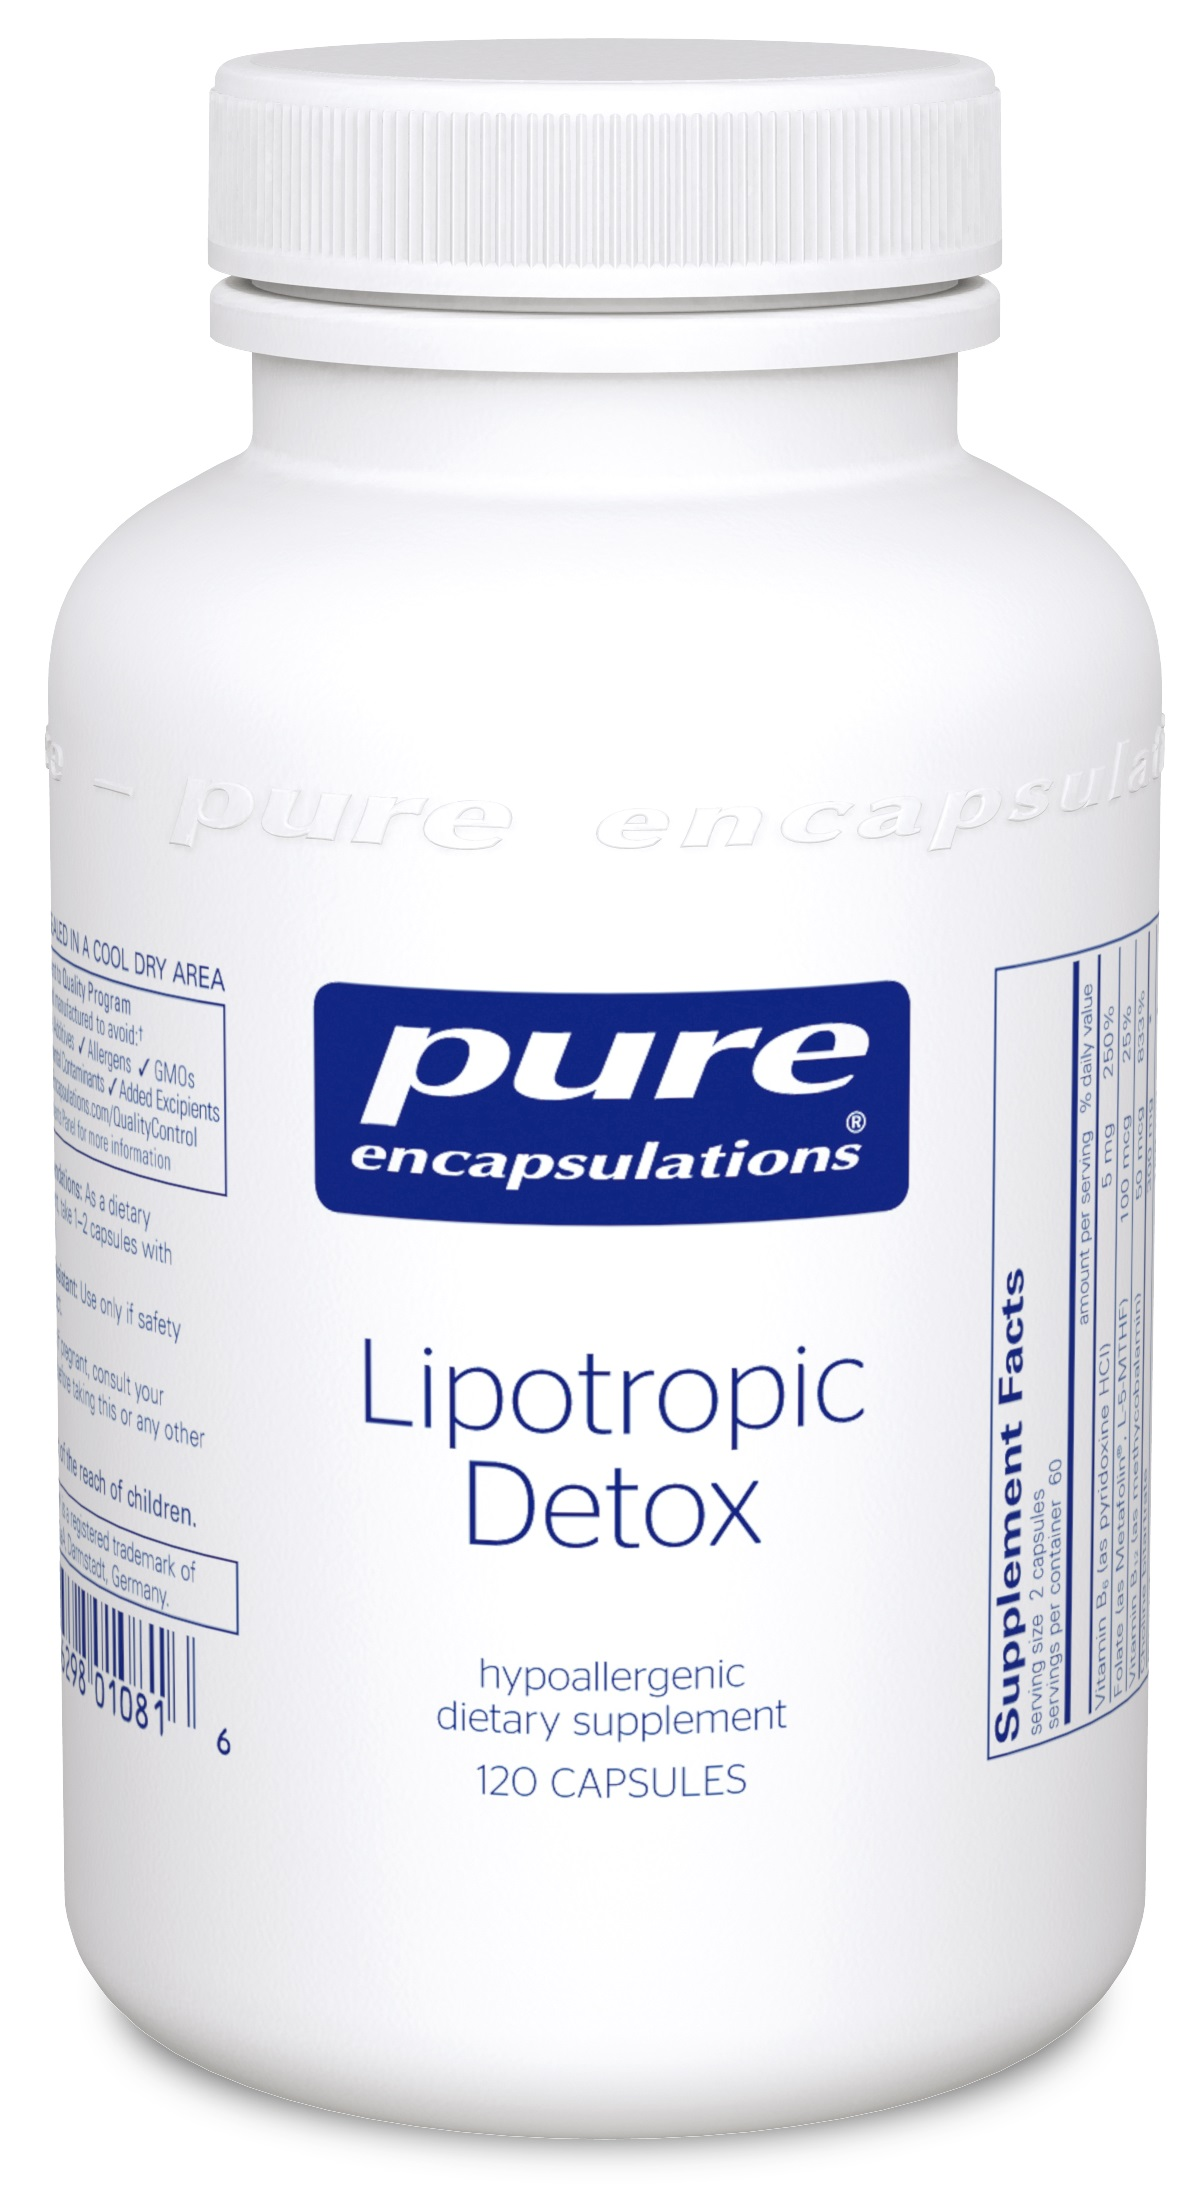 Pure Encapsulations Lipotropic Detox